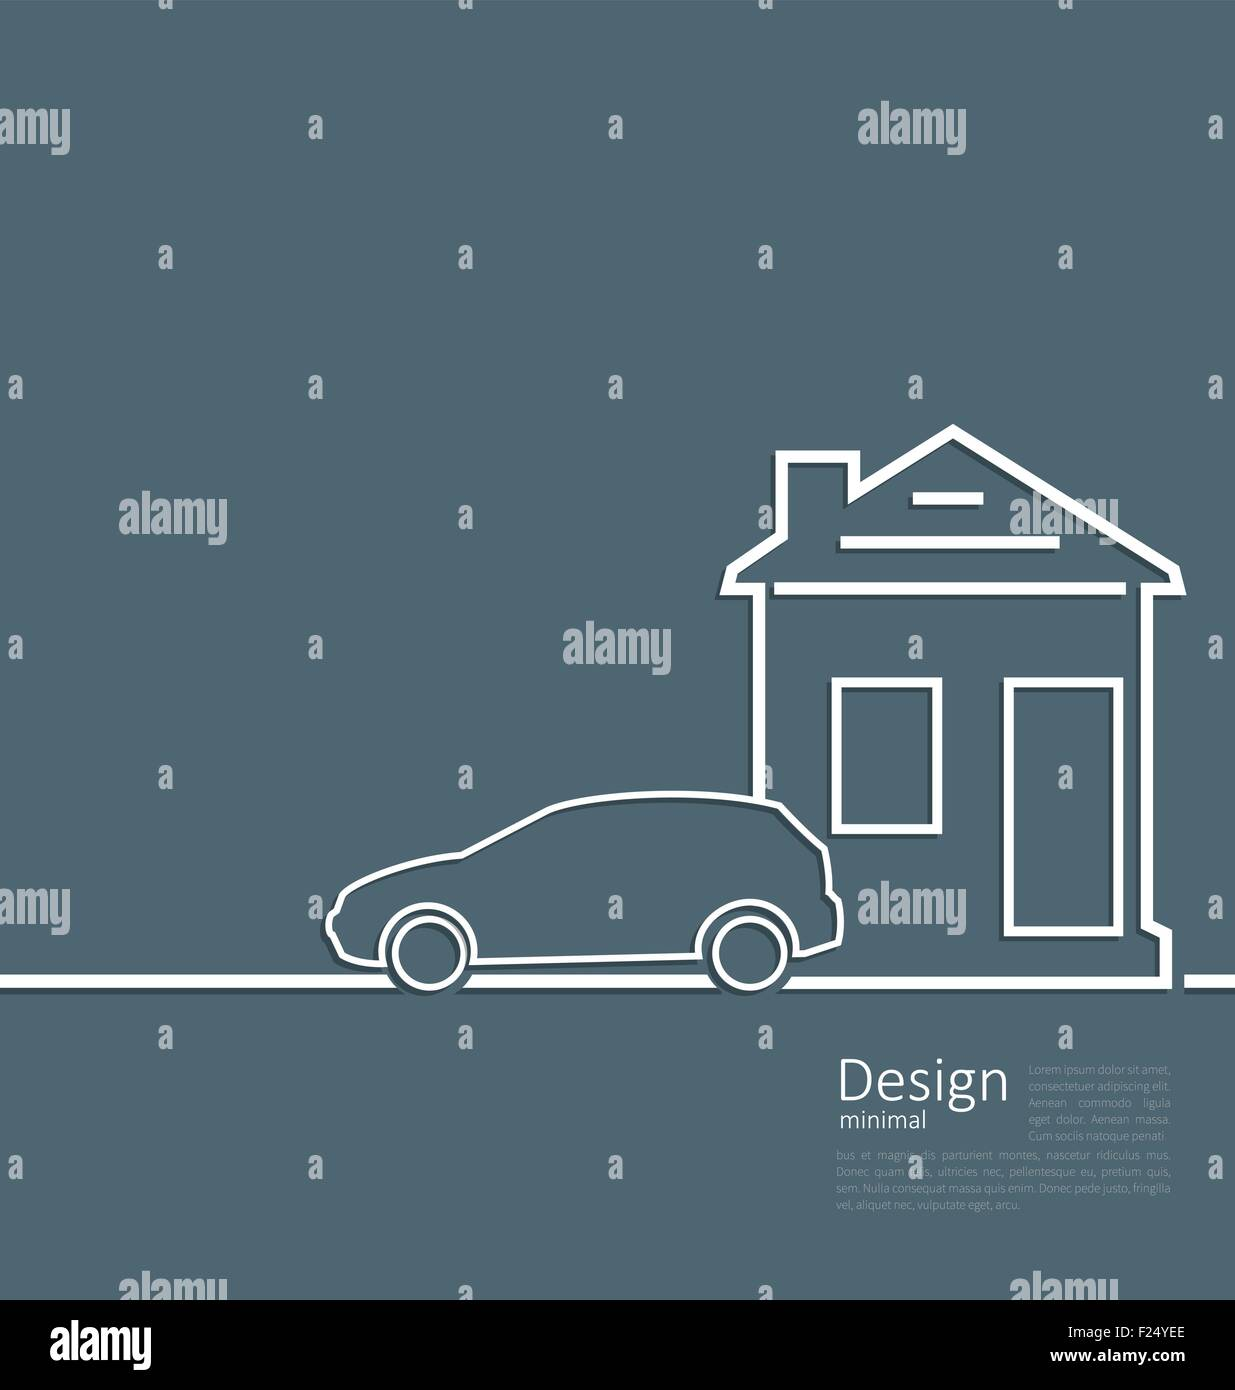 Web template house and parking car logo in minimal flat style cl - Stock Vector